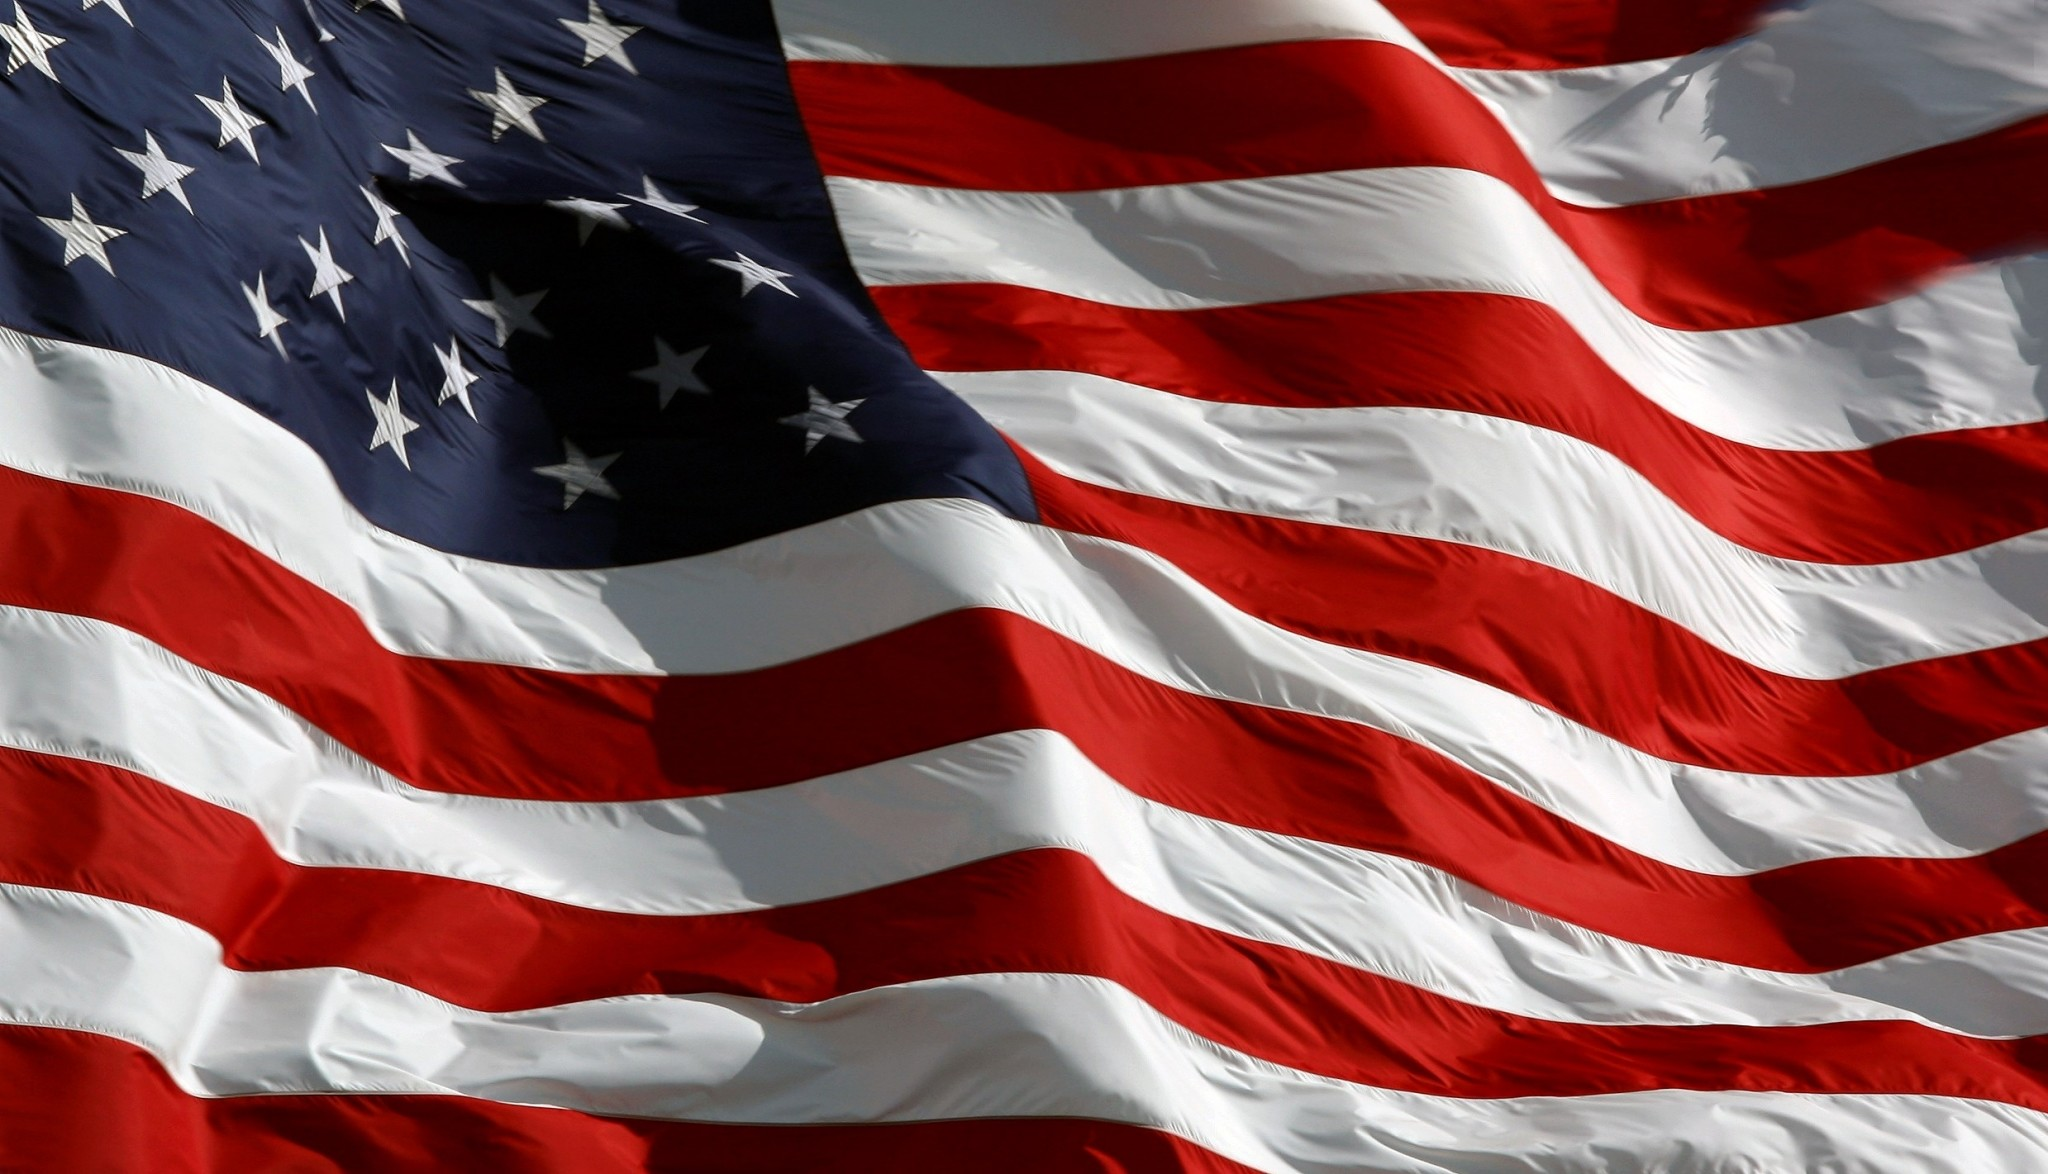 american flag wallpaper pictures free